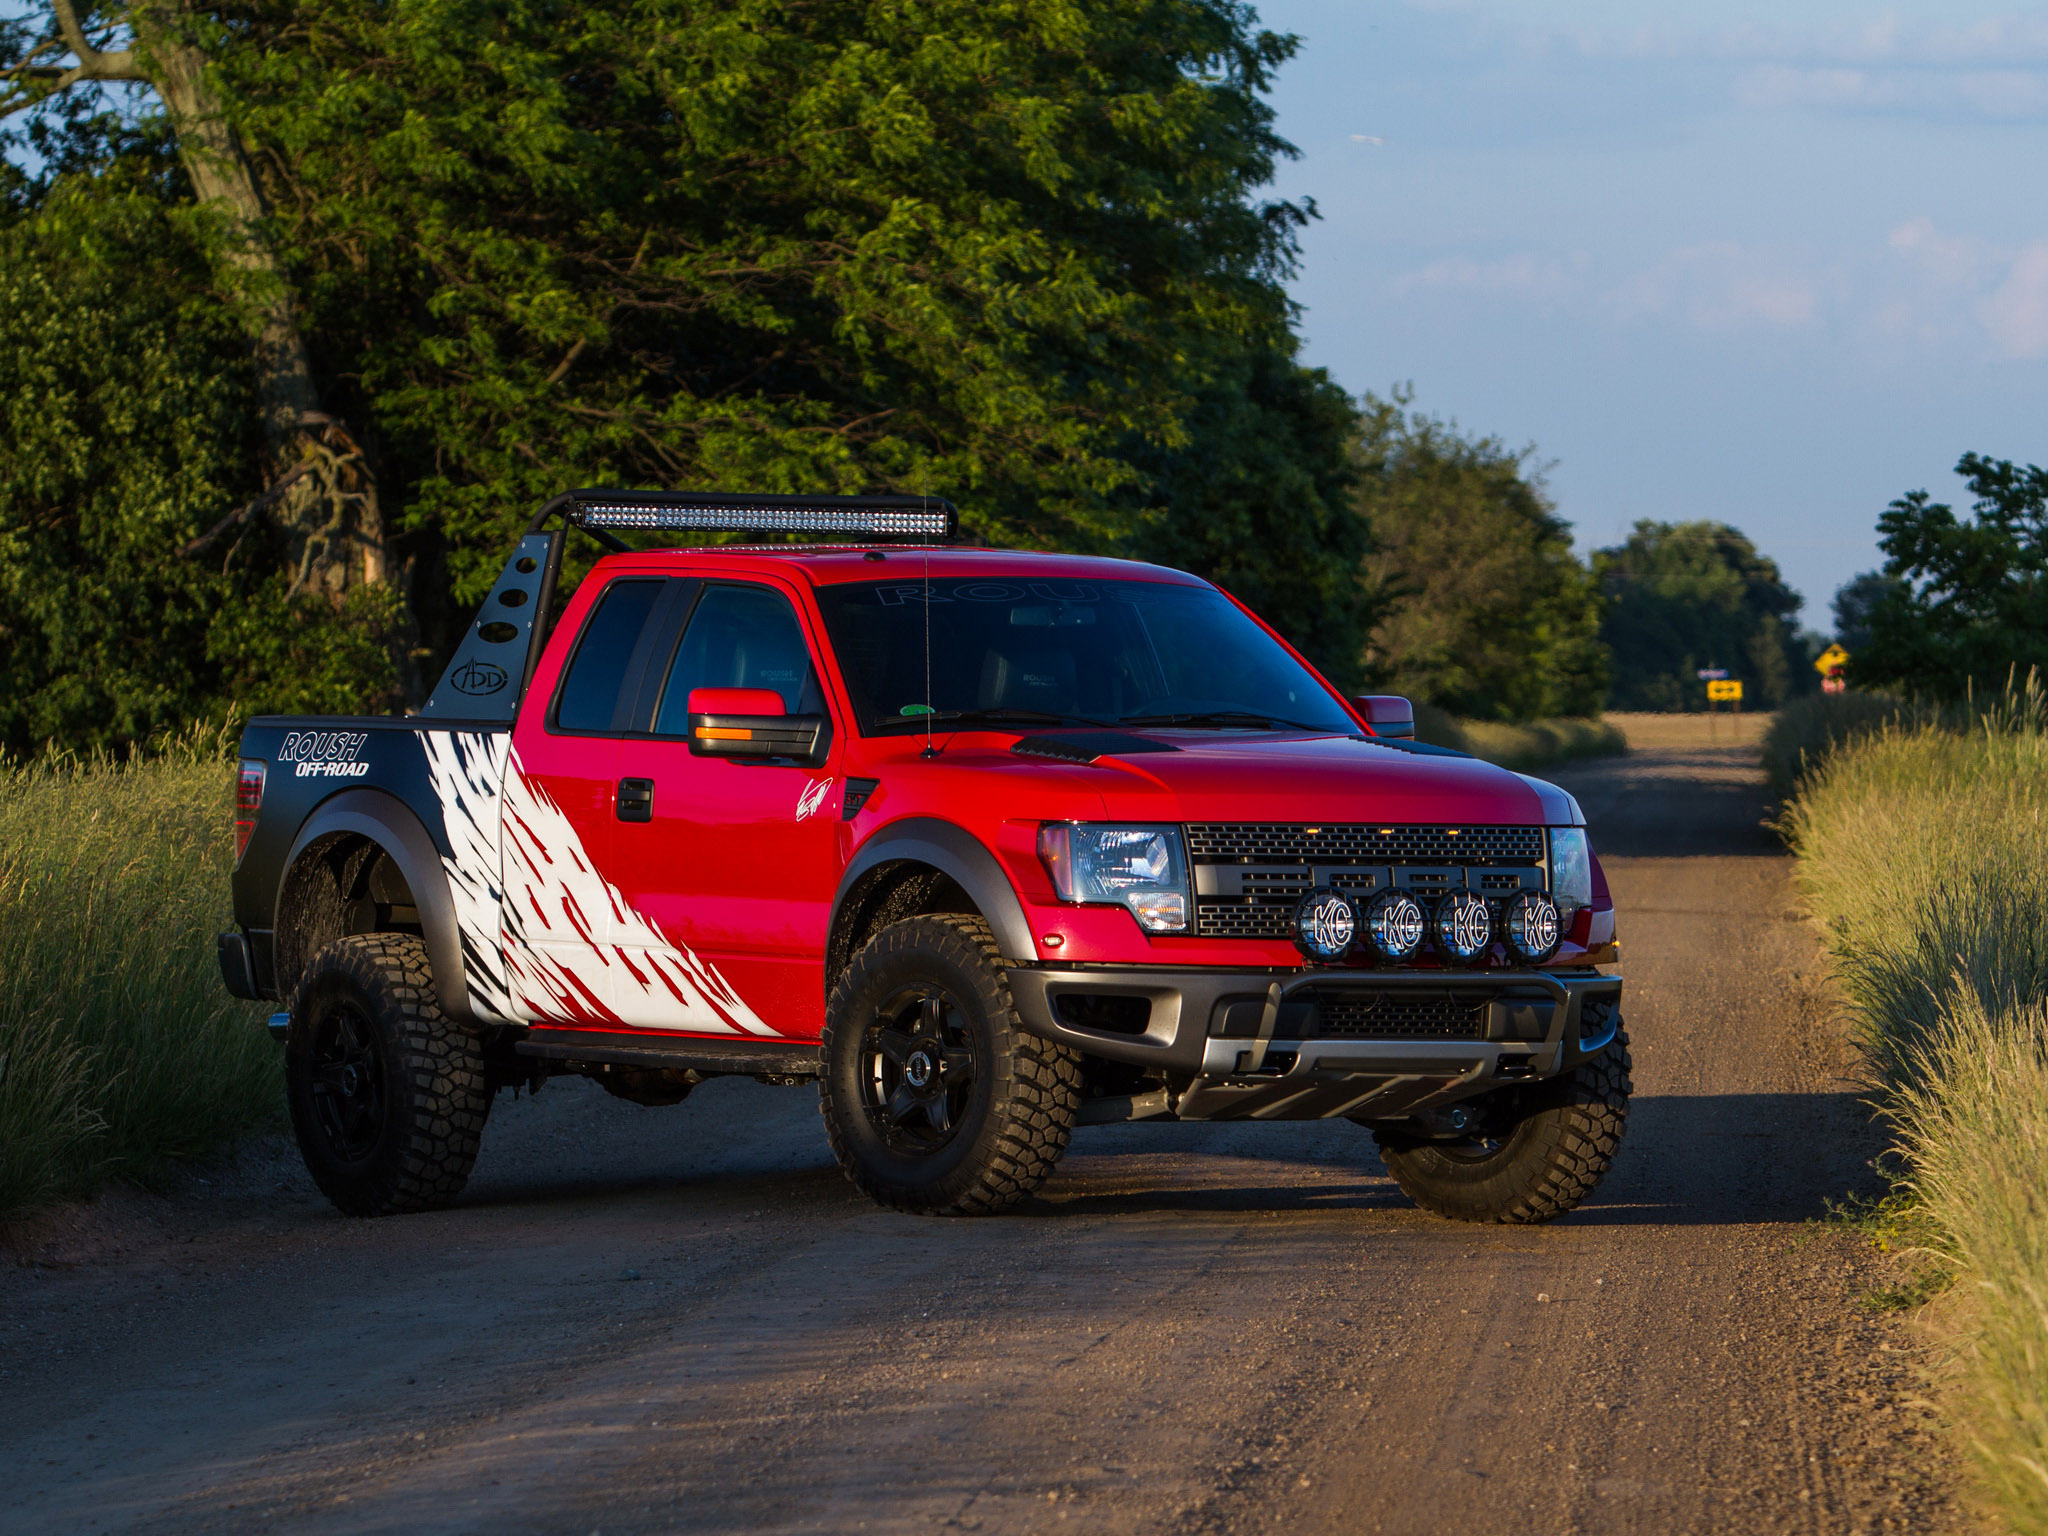 2012 roush ford f 150 svt raptor 4x4 muscle truck he wallpaper 2048x1536 110495 wallpaperup. Black Bedroom Furniture Sets. Home Design Ideas